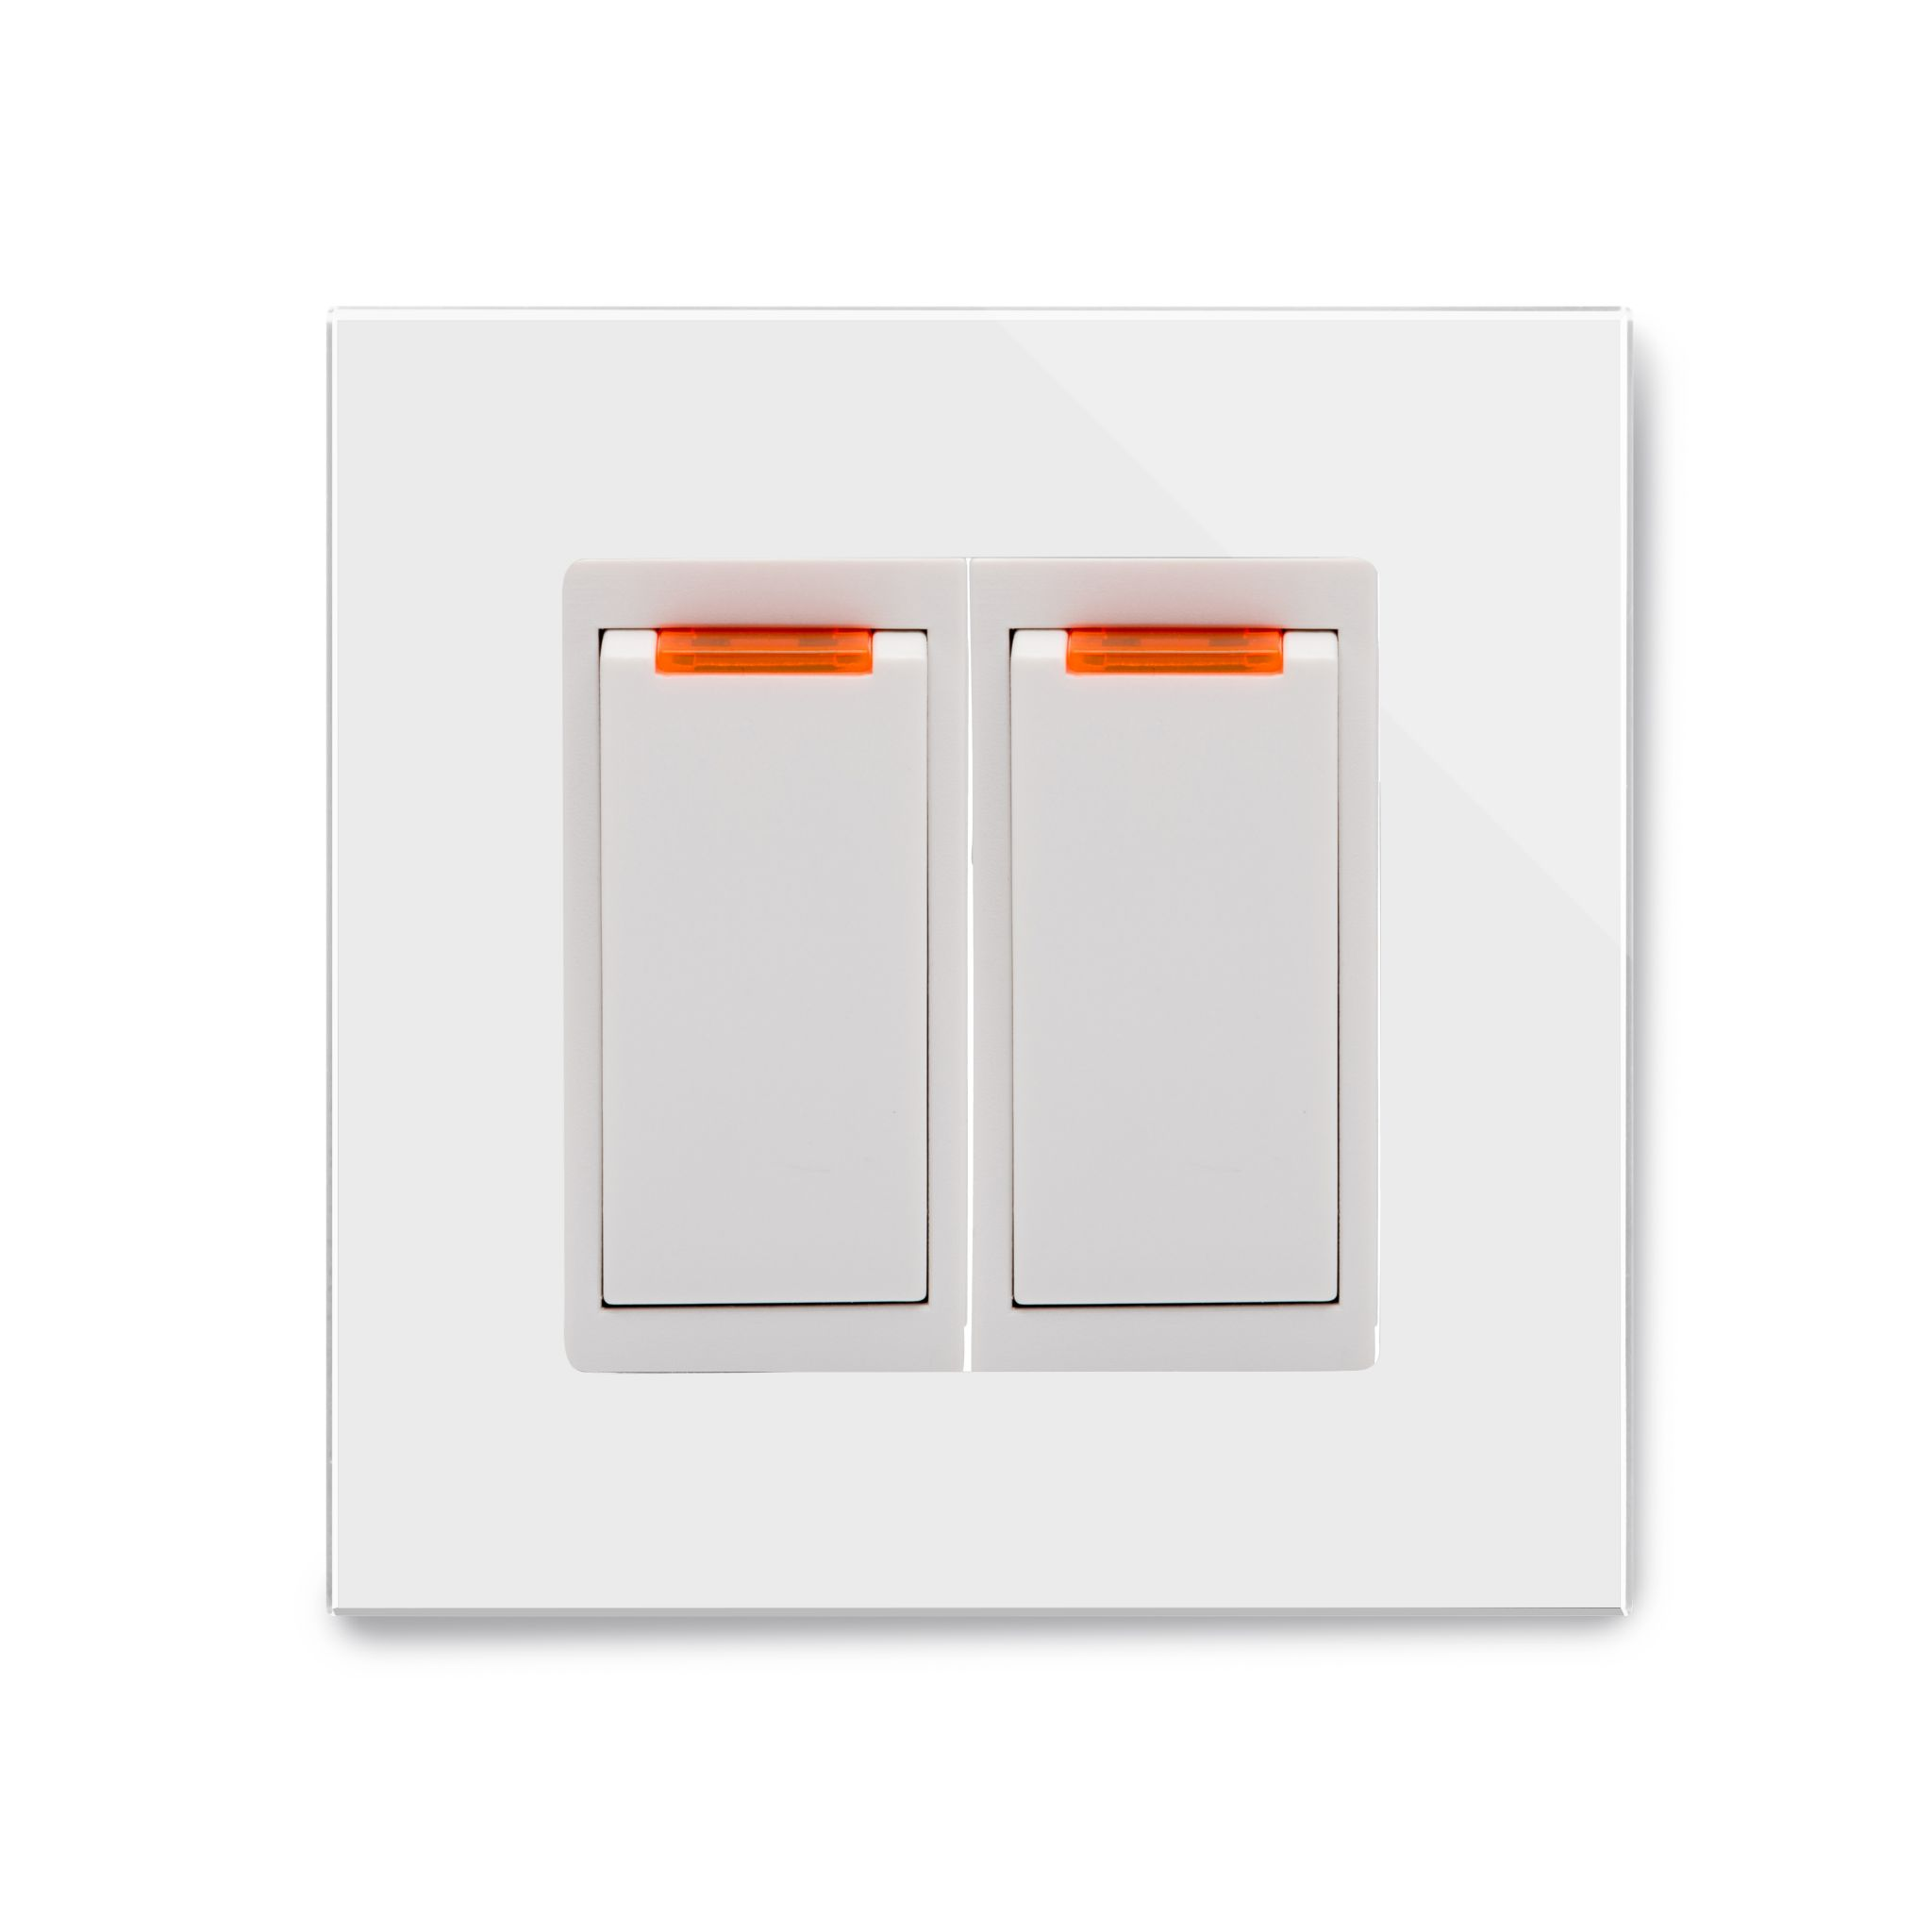 RetroTouch 20 Amp Double Pole Dual Switch with Neon White Glass PG 04204